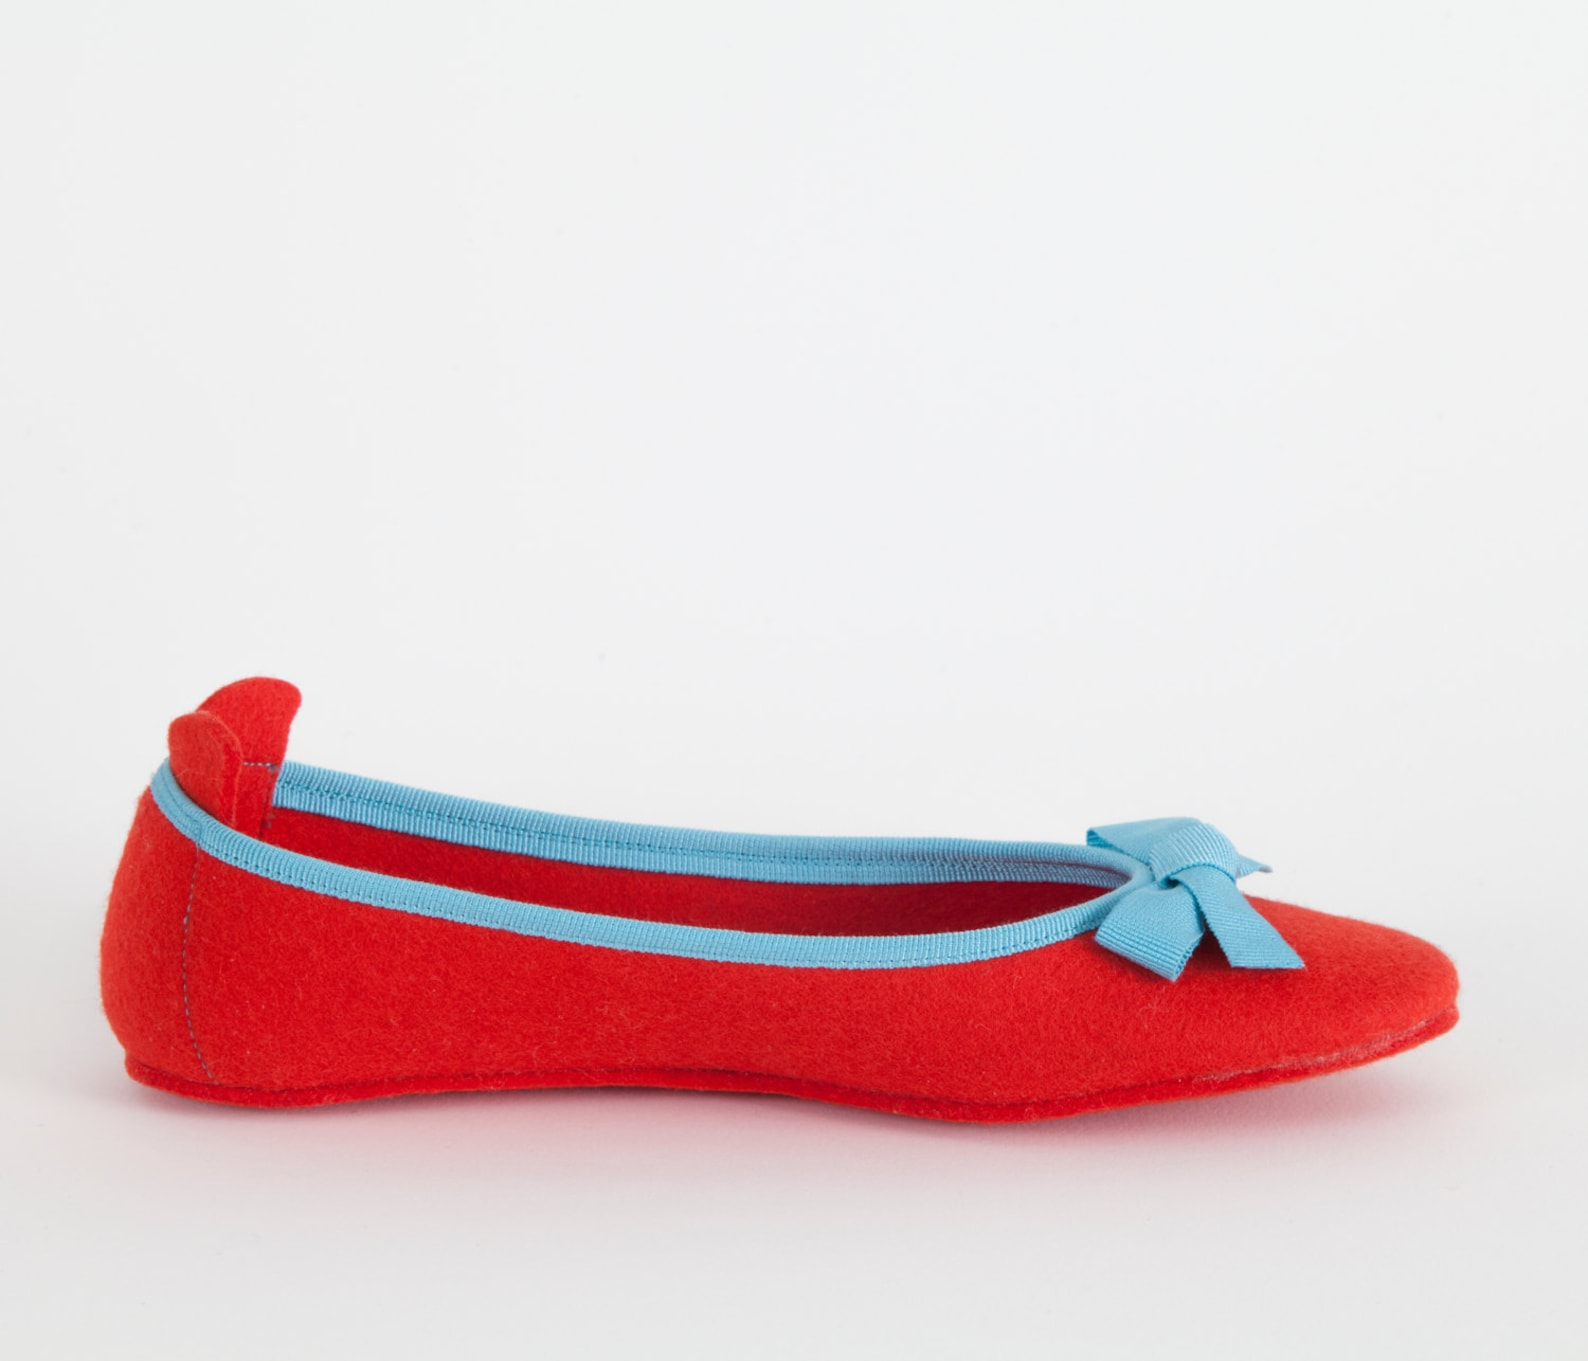 women's slippers- red ballet flat- merino wool felt- handmade in italy- grosgrain ribbon & bow- size eu 36